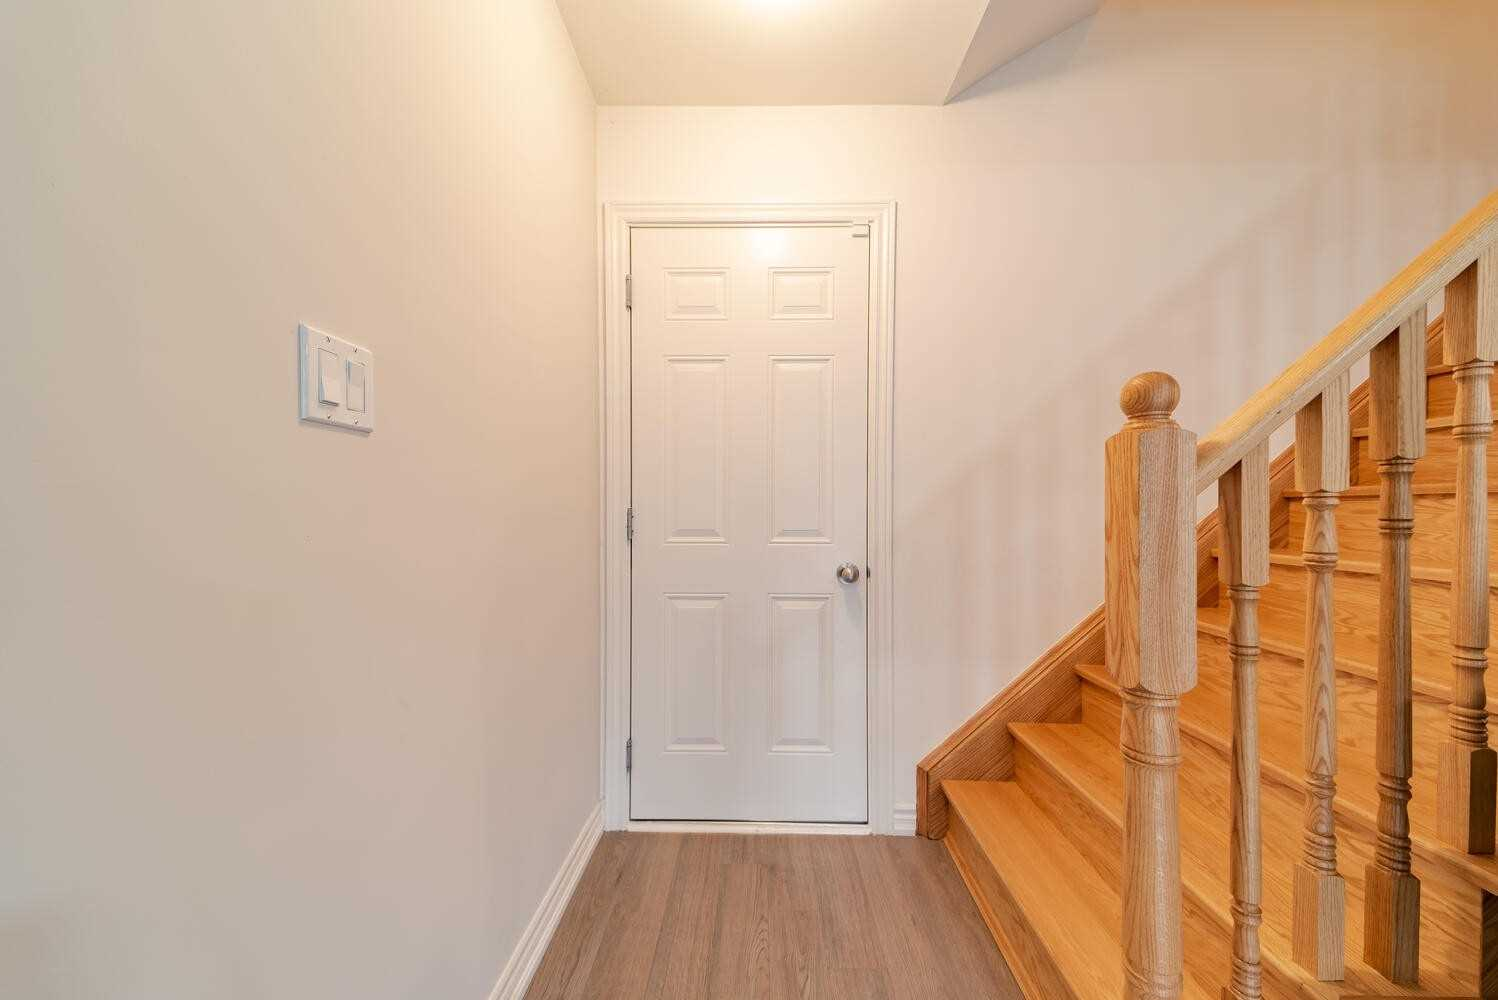 Image 17 of 40 showing inside of 3 Bedroom Condo Townhouse 2-Storey for Sale at 2738 William Jackson Dr Unit# 6, Pickering L1X0E6